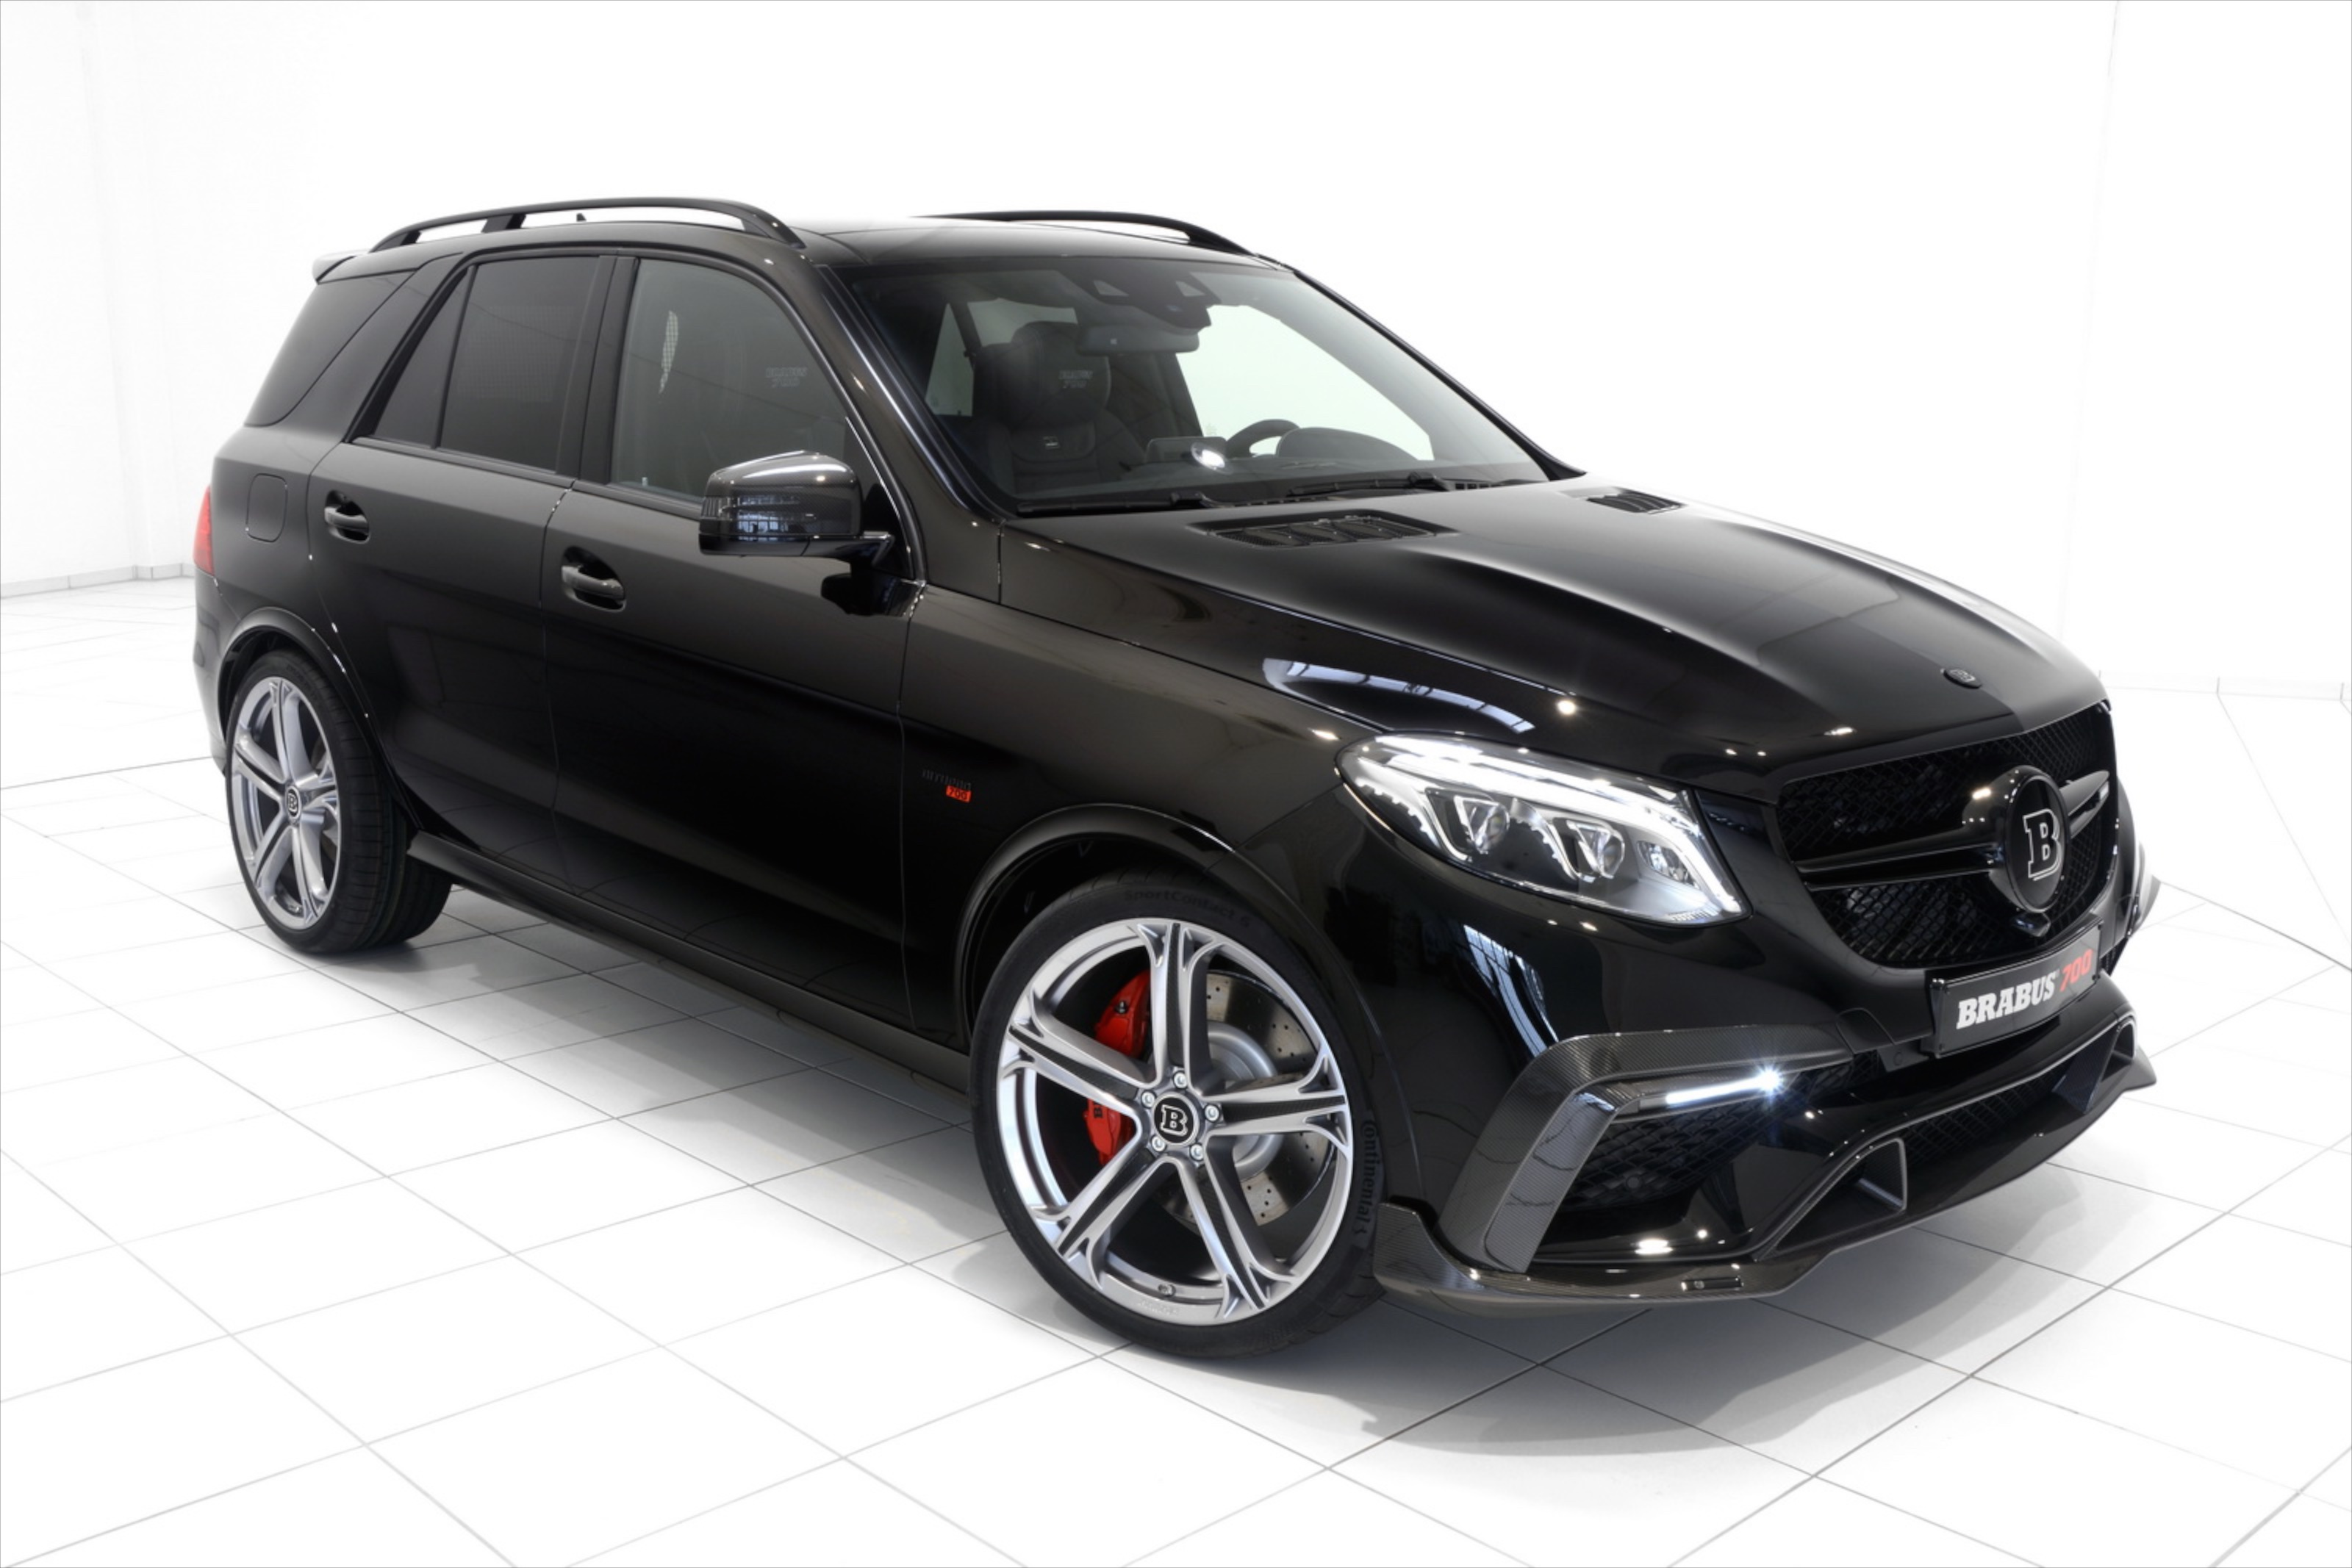 2018 Mercedes Gle >> Brabus GLE 700 – Mercedes-AMG GLE 63 with 700 PS Paul Tan - Image 458282